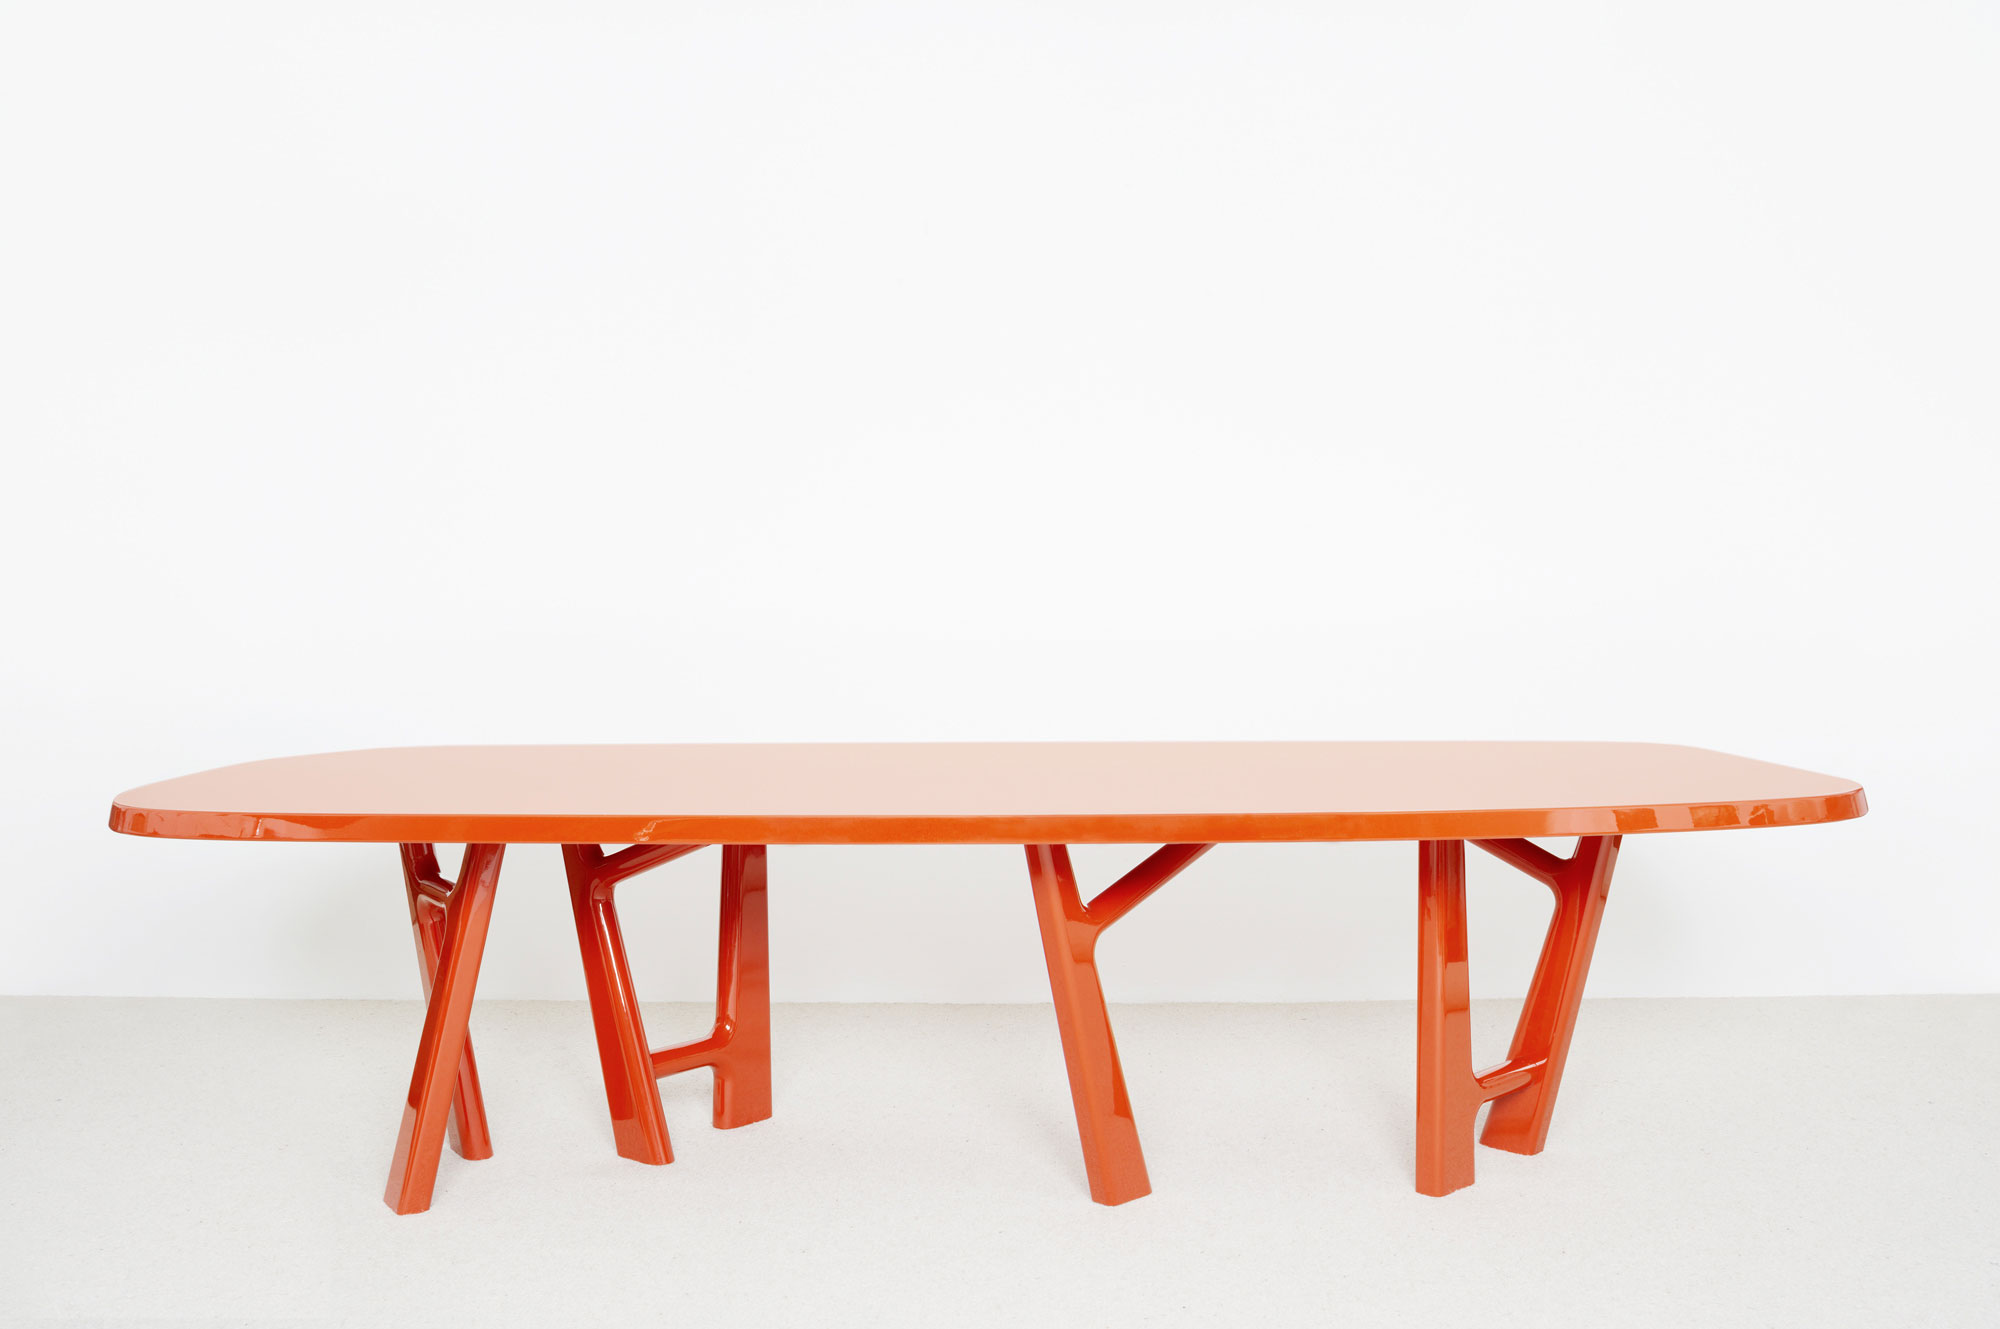 Table Ybu Laque - Christophe Delcourt